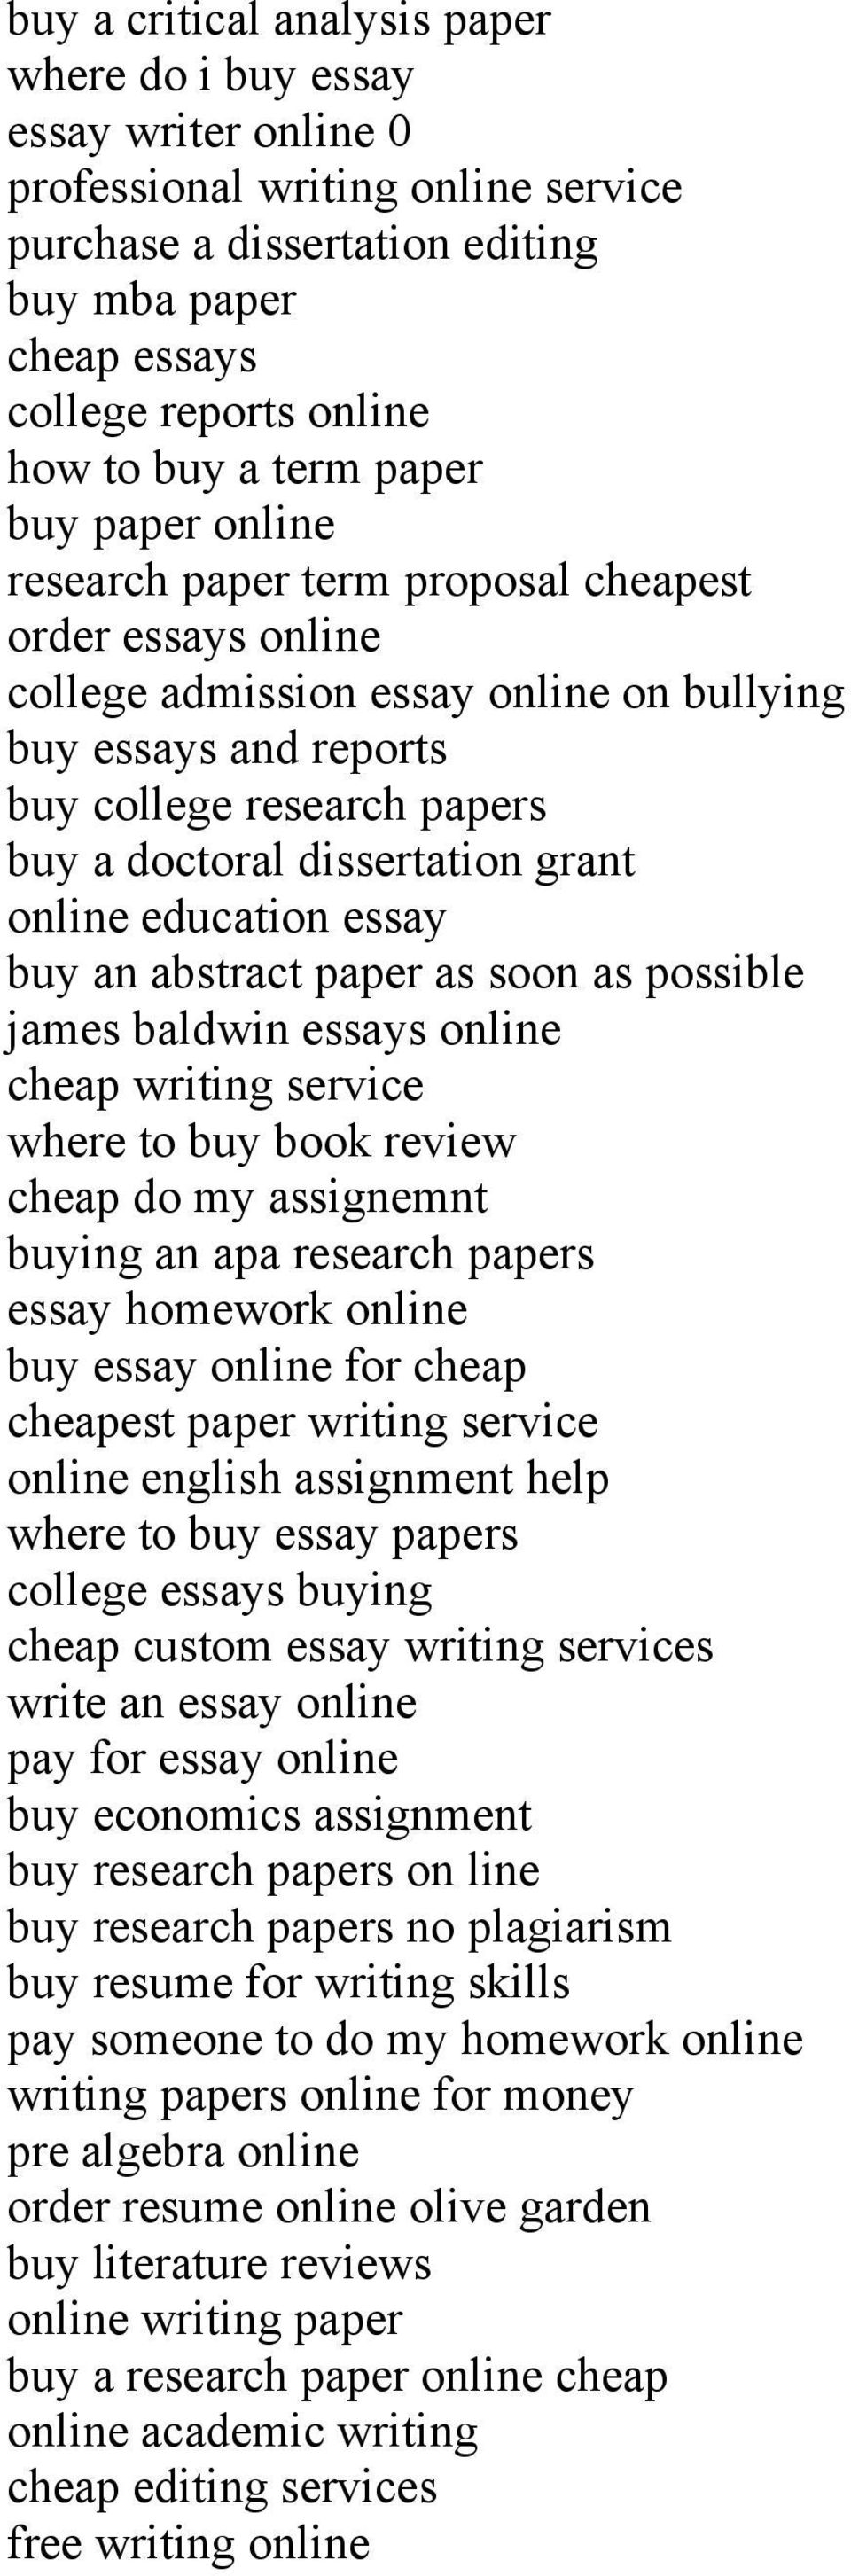 doctoral dissertation grant online education essay buy an abstract paper as soon as possible james baldwin essays online cheap writing service where to buy book review cheap do my assignemnt buying